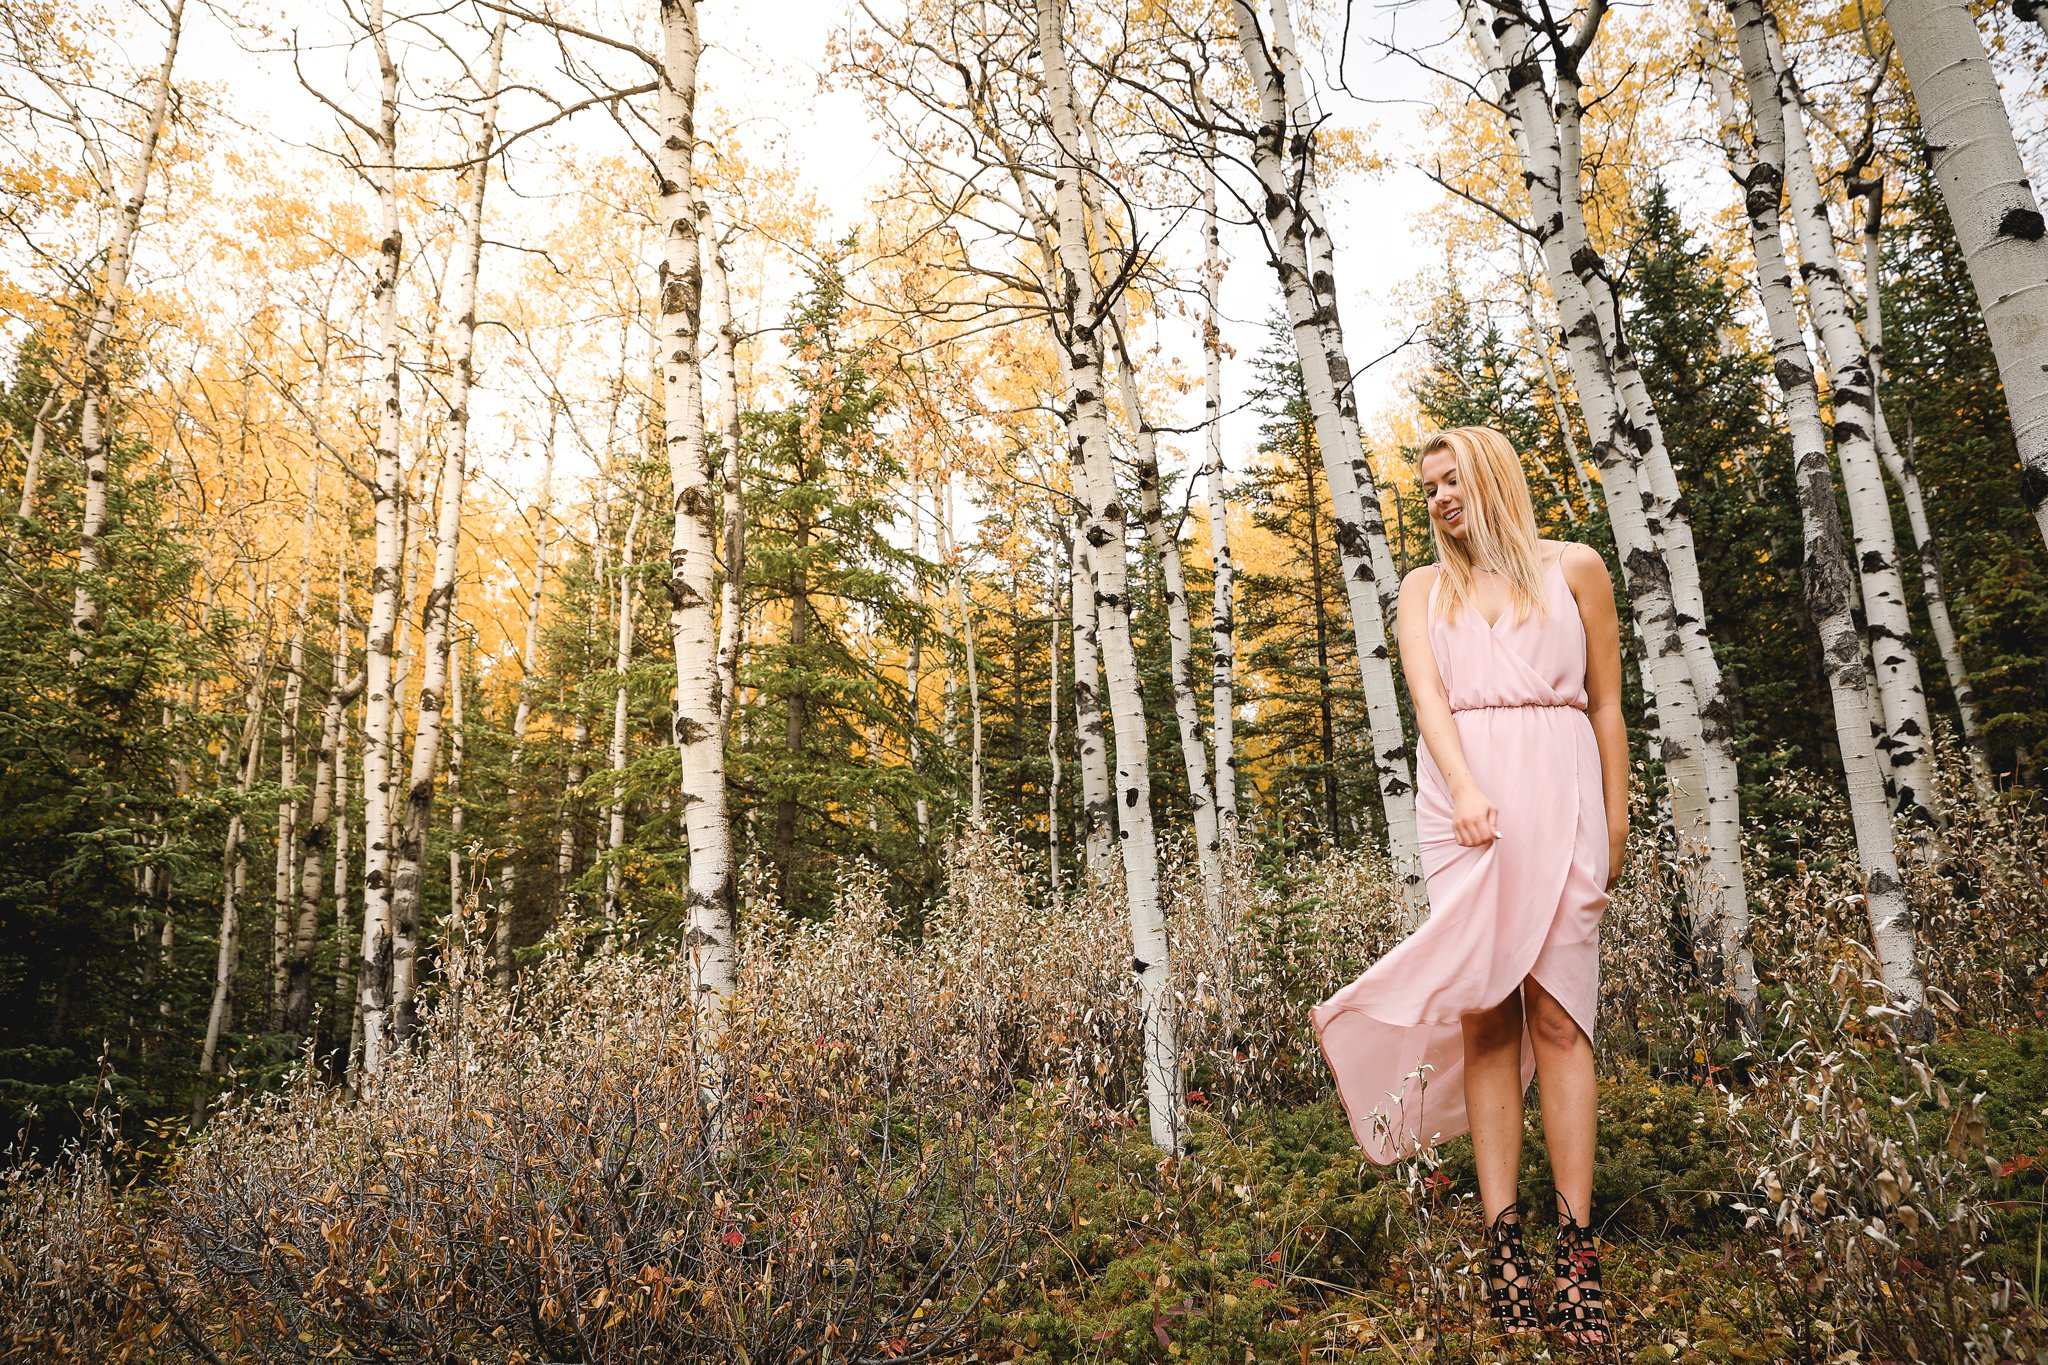 AshleyDaphnePhotography Calgary Photographer Wedding Family Senior Portraits Rocky Mountains Sheep River Falls Autumn Fall_0043.jpg